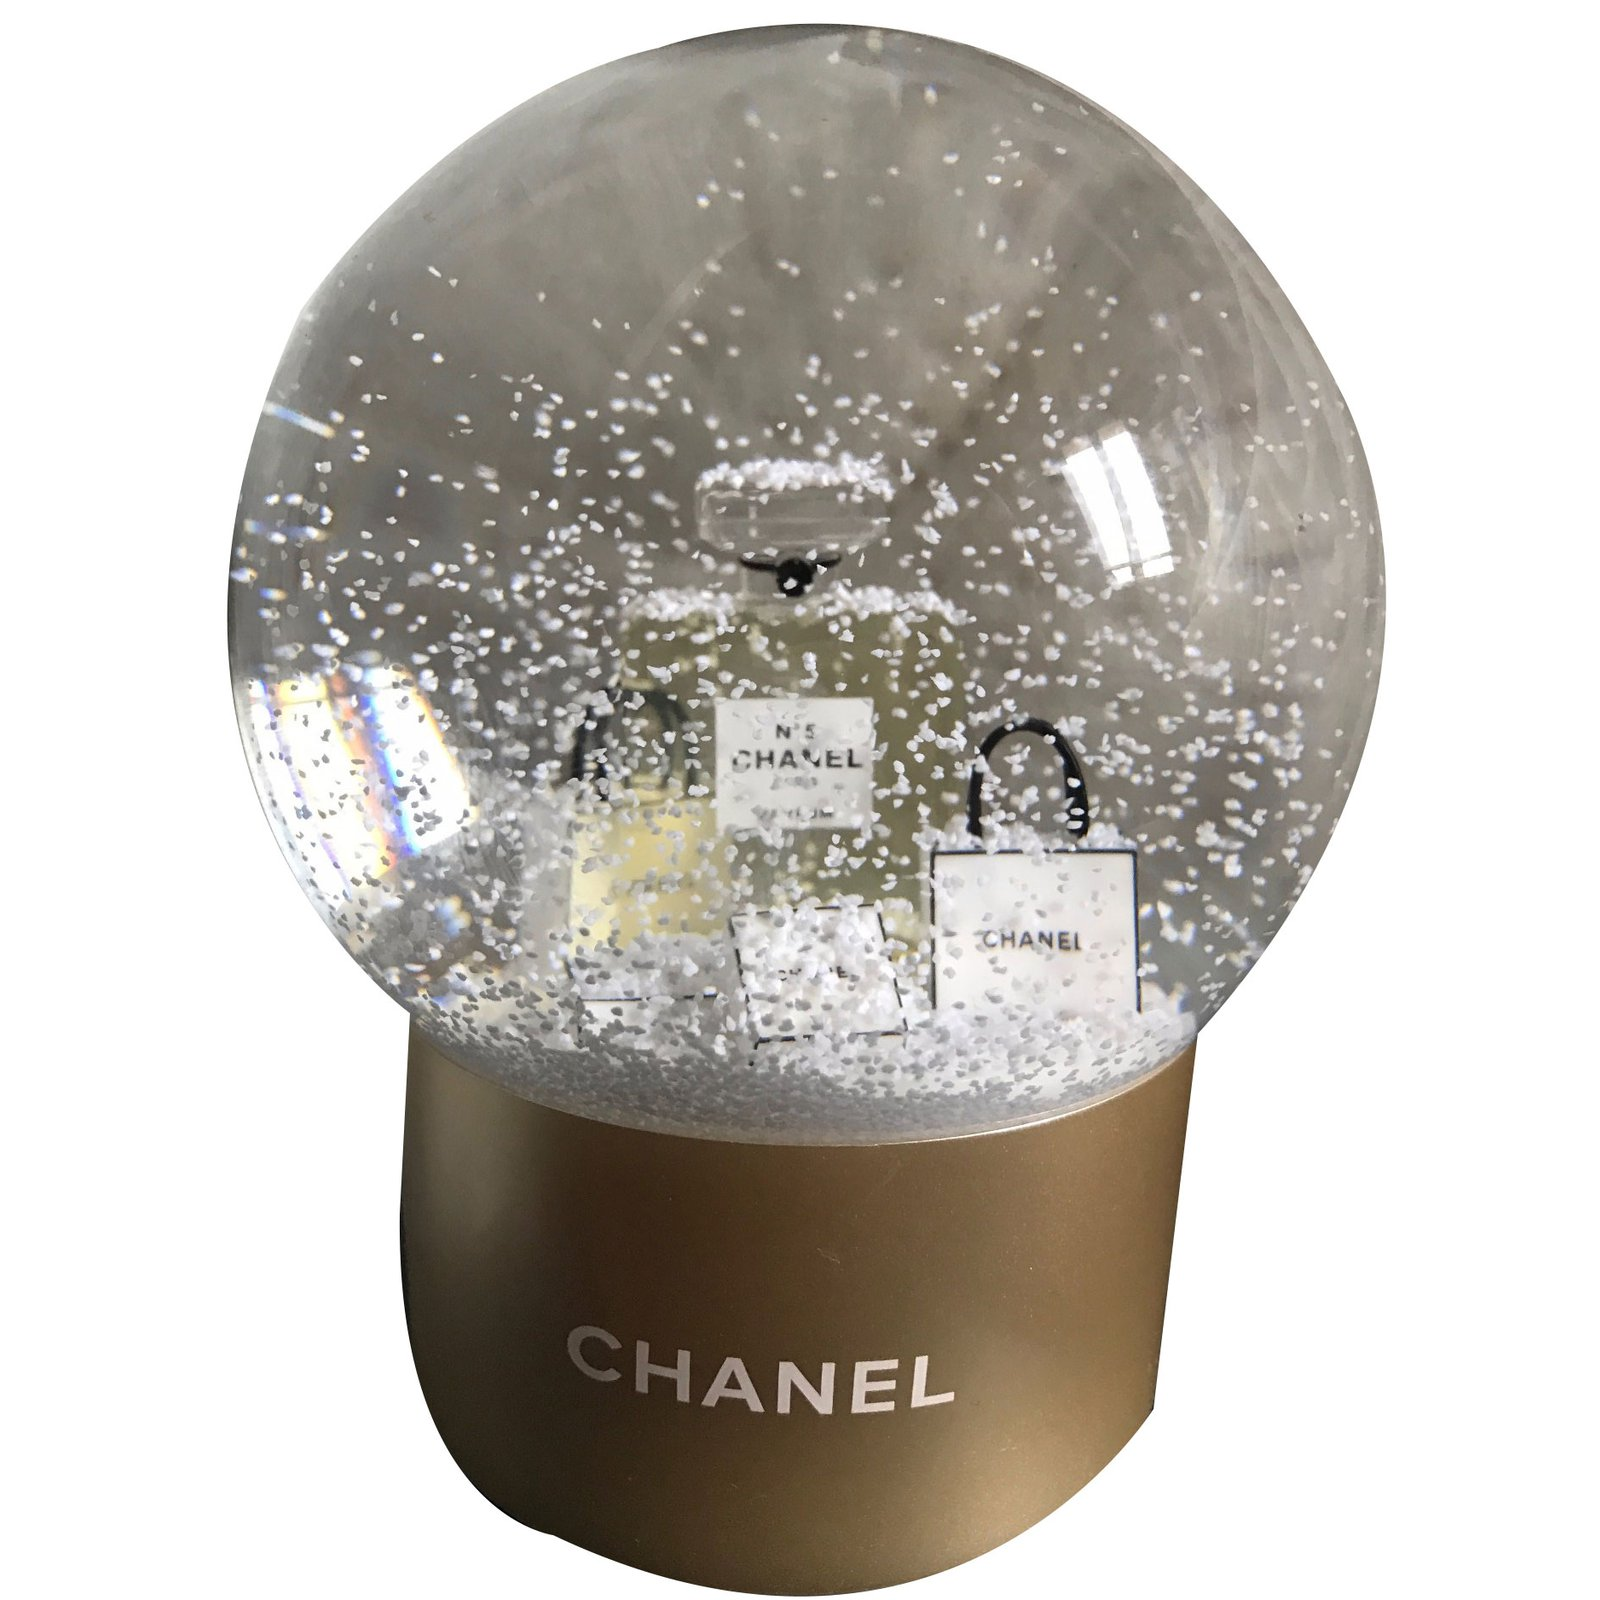 d coration divers chanel boule neige chanel verre r sine. Black Bedroom Furniture Sets. Home Design Ideas